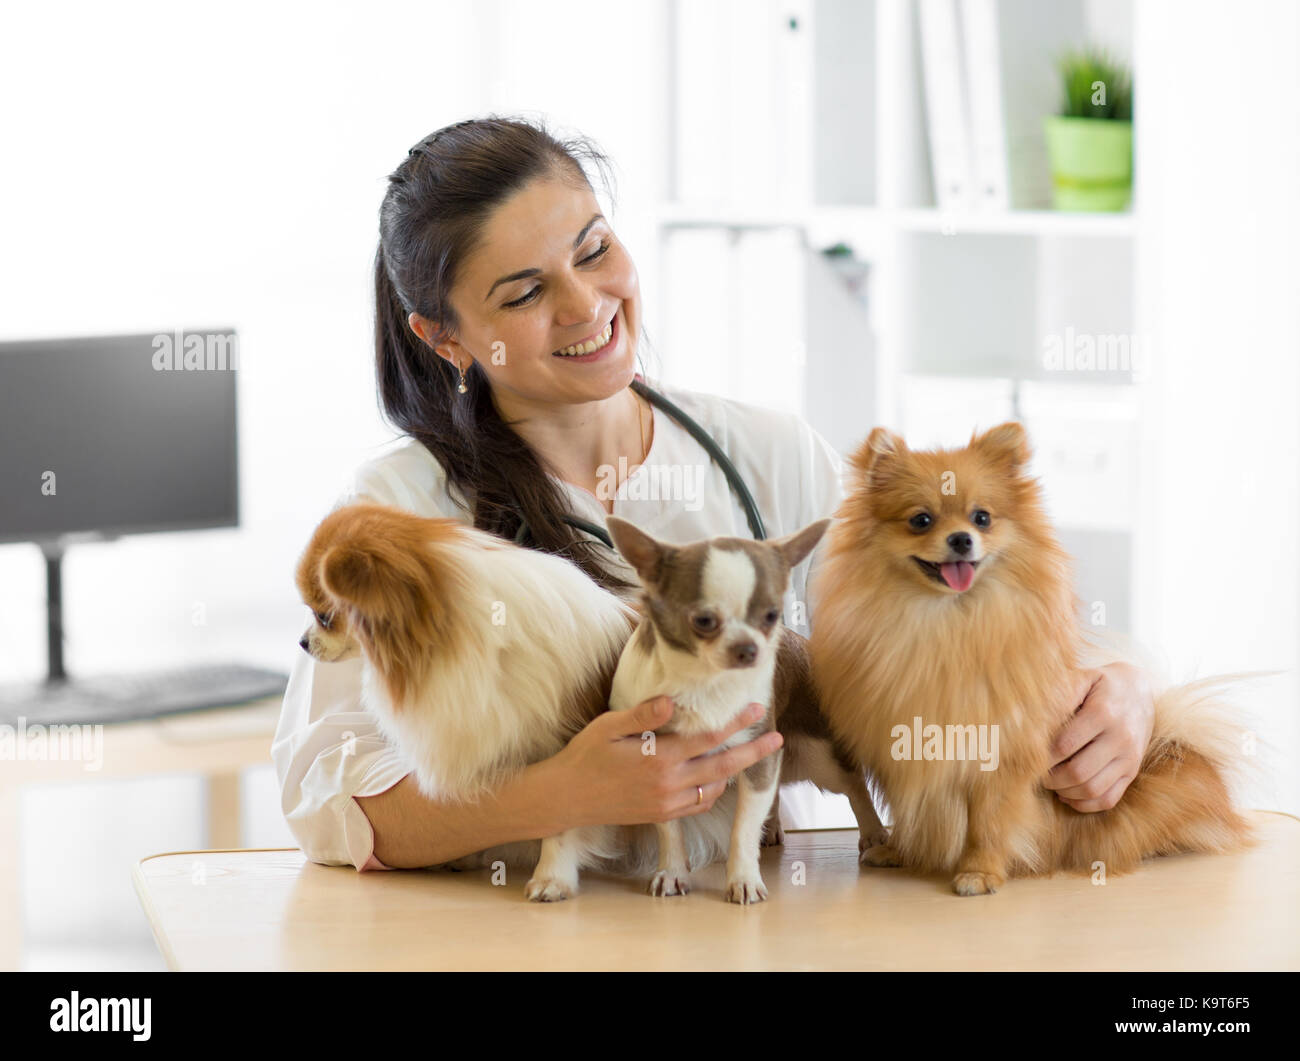 Veterinarian embraces three dogs in vet clinic - Stock Image